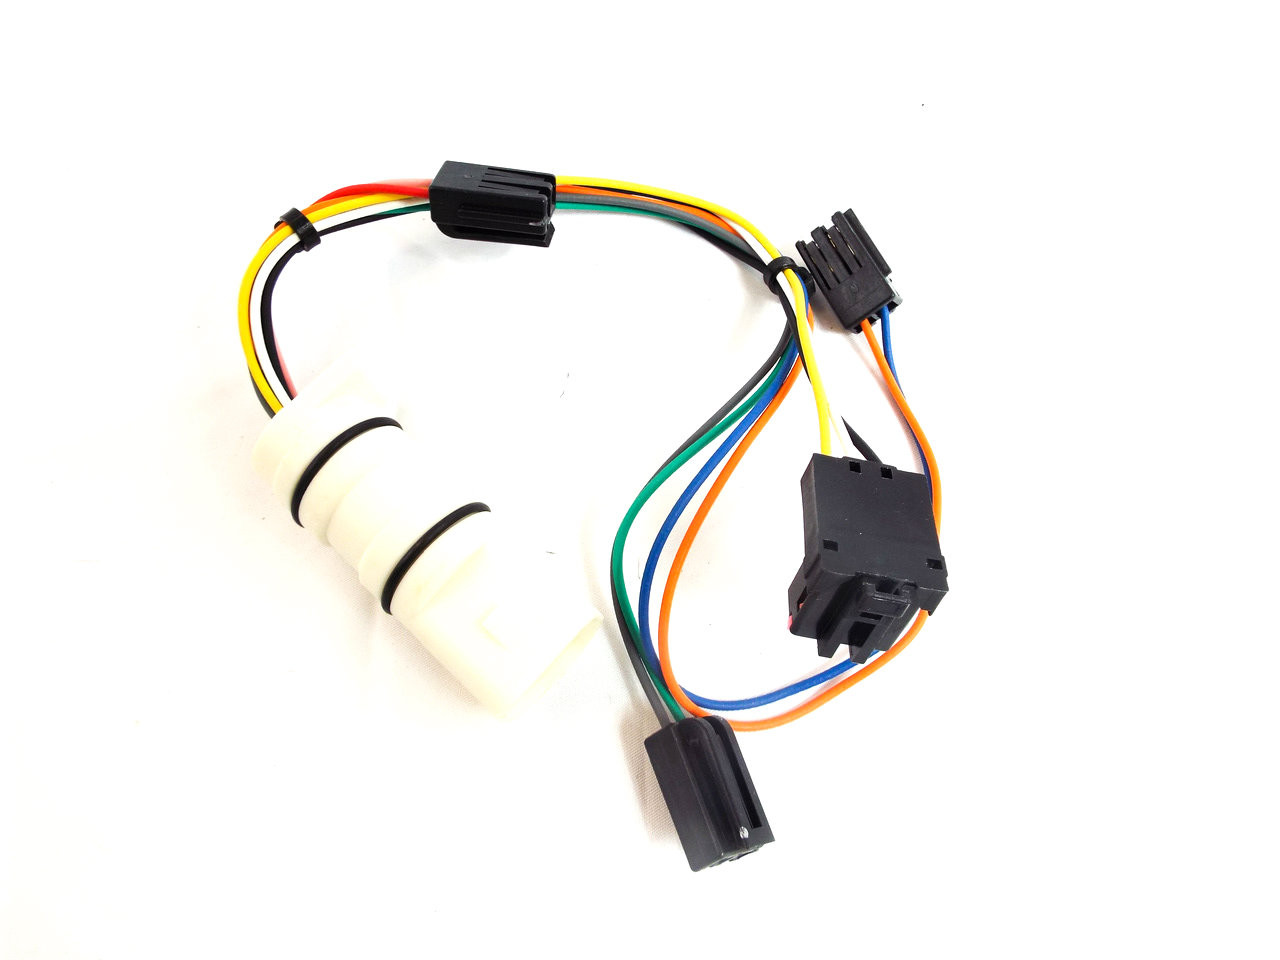 small resolution of ford aode 4r70w internal wiring harness w case connector f2vy 7g276 aaode wiring harness 7